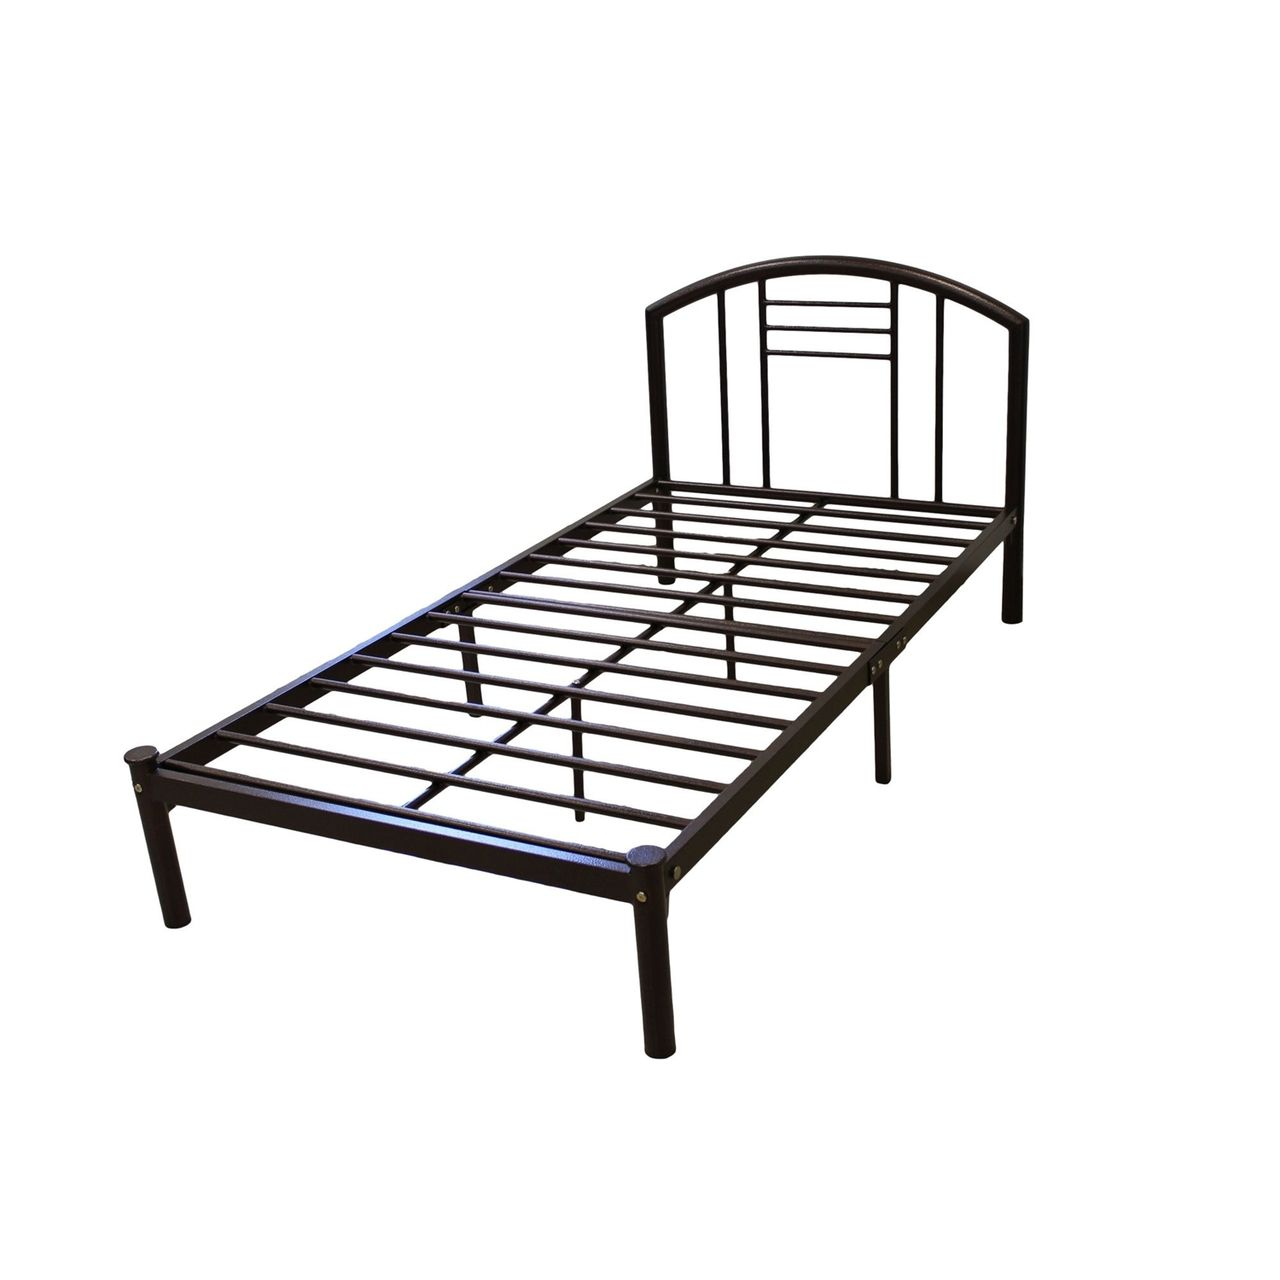 Full size Metal Platform Bed Frame with Headboard in Bronze Finish ...